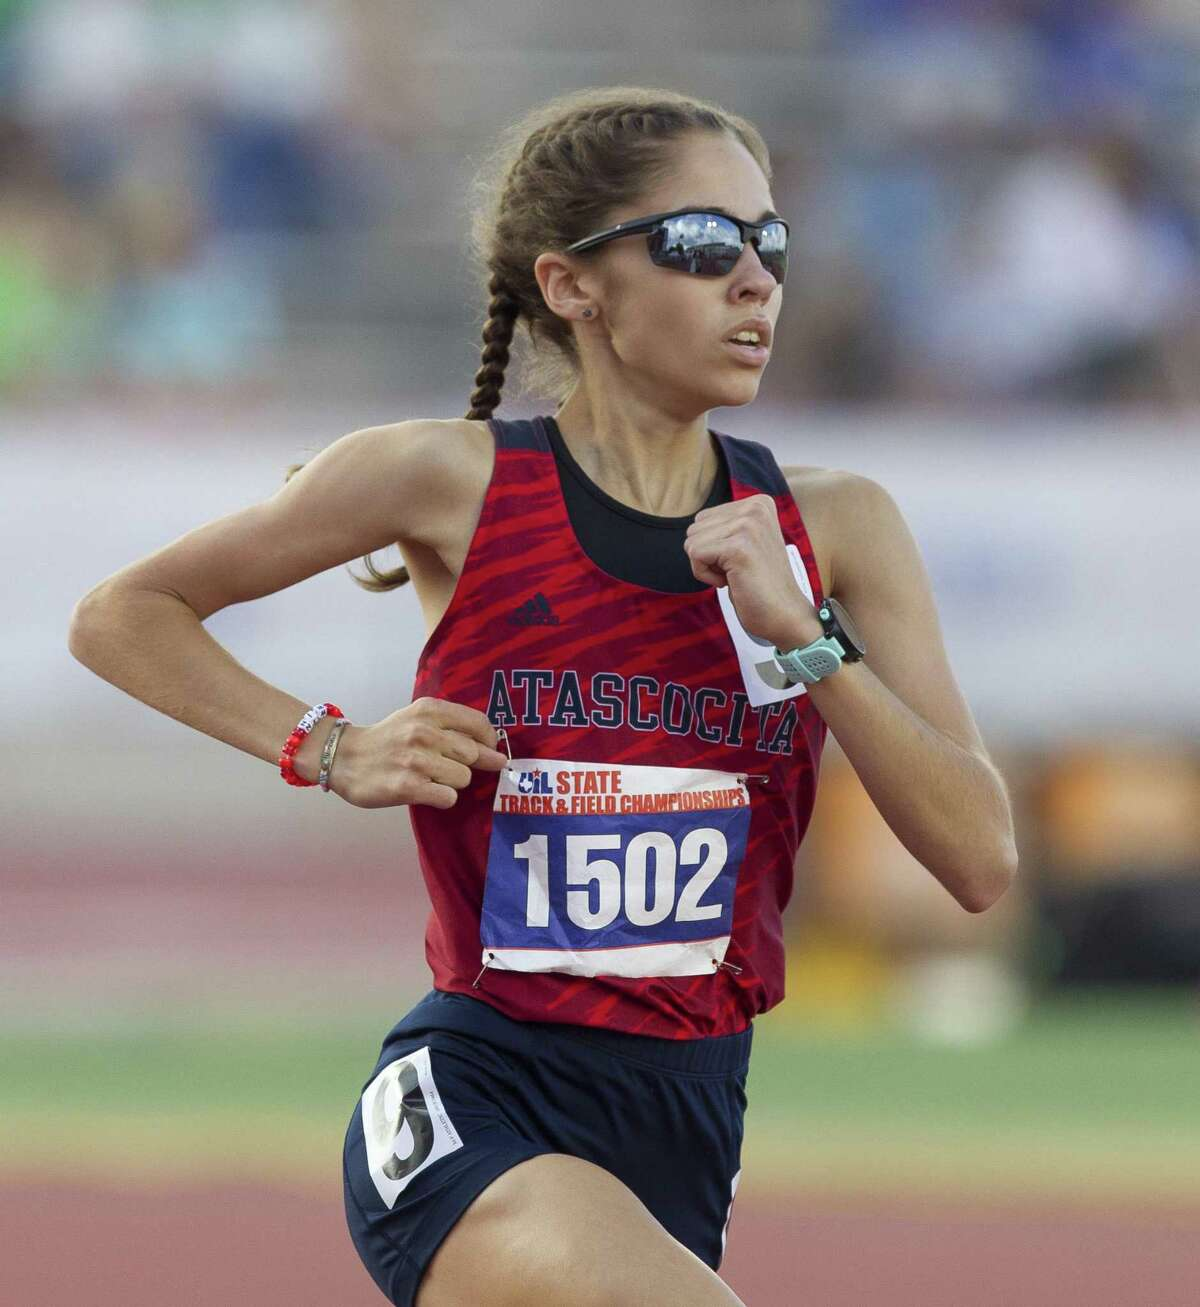 Avery Clover of Atascocita competes in the Class 6A girls 3,200-meter run Avery Clover of Atascocita competes in the Class 6A girls 3,200-meter run during the UIL State Track & Field Championships at Mike A. Myers Stadium, Saturday, May 12, 2018, in Austin.